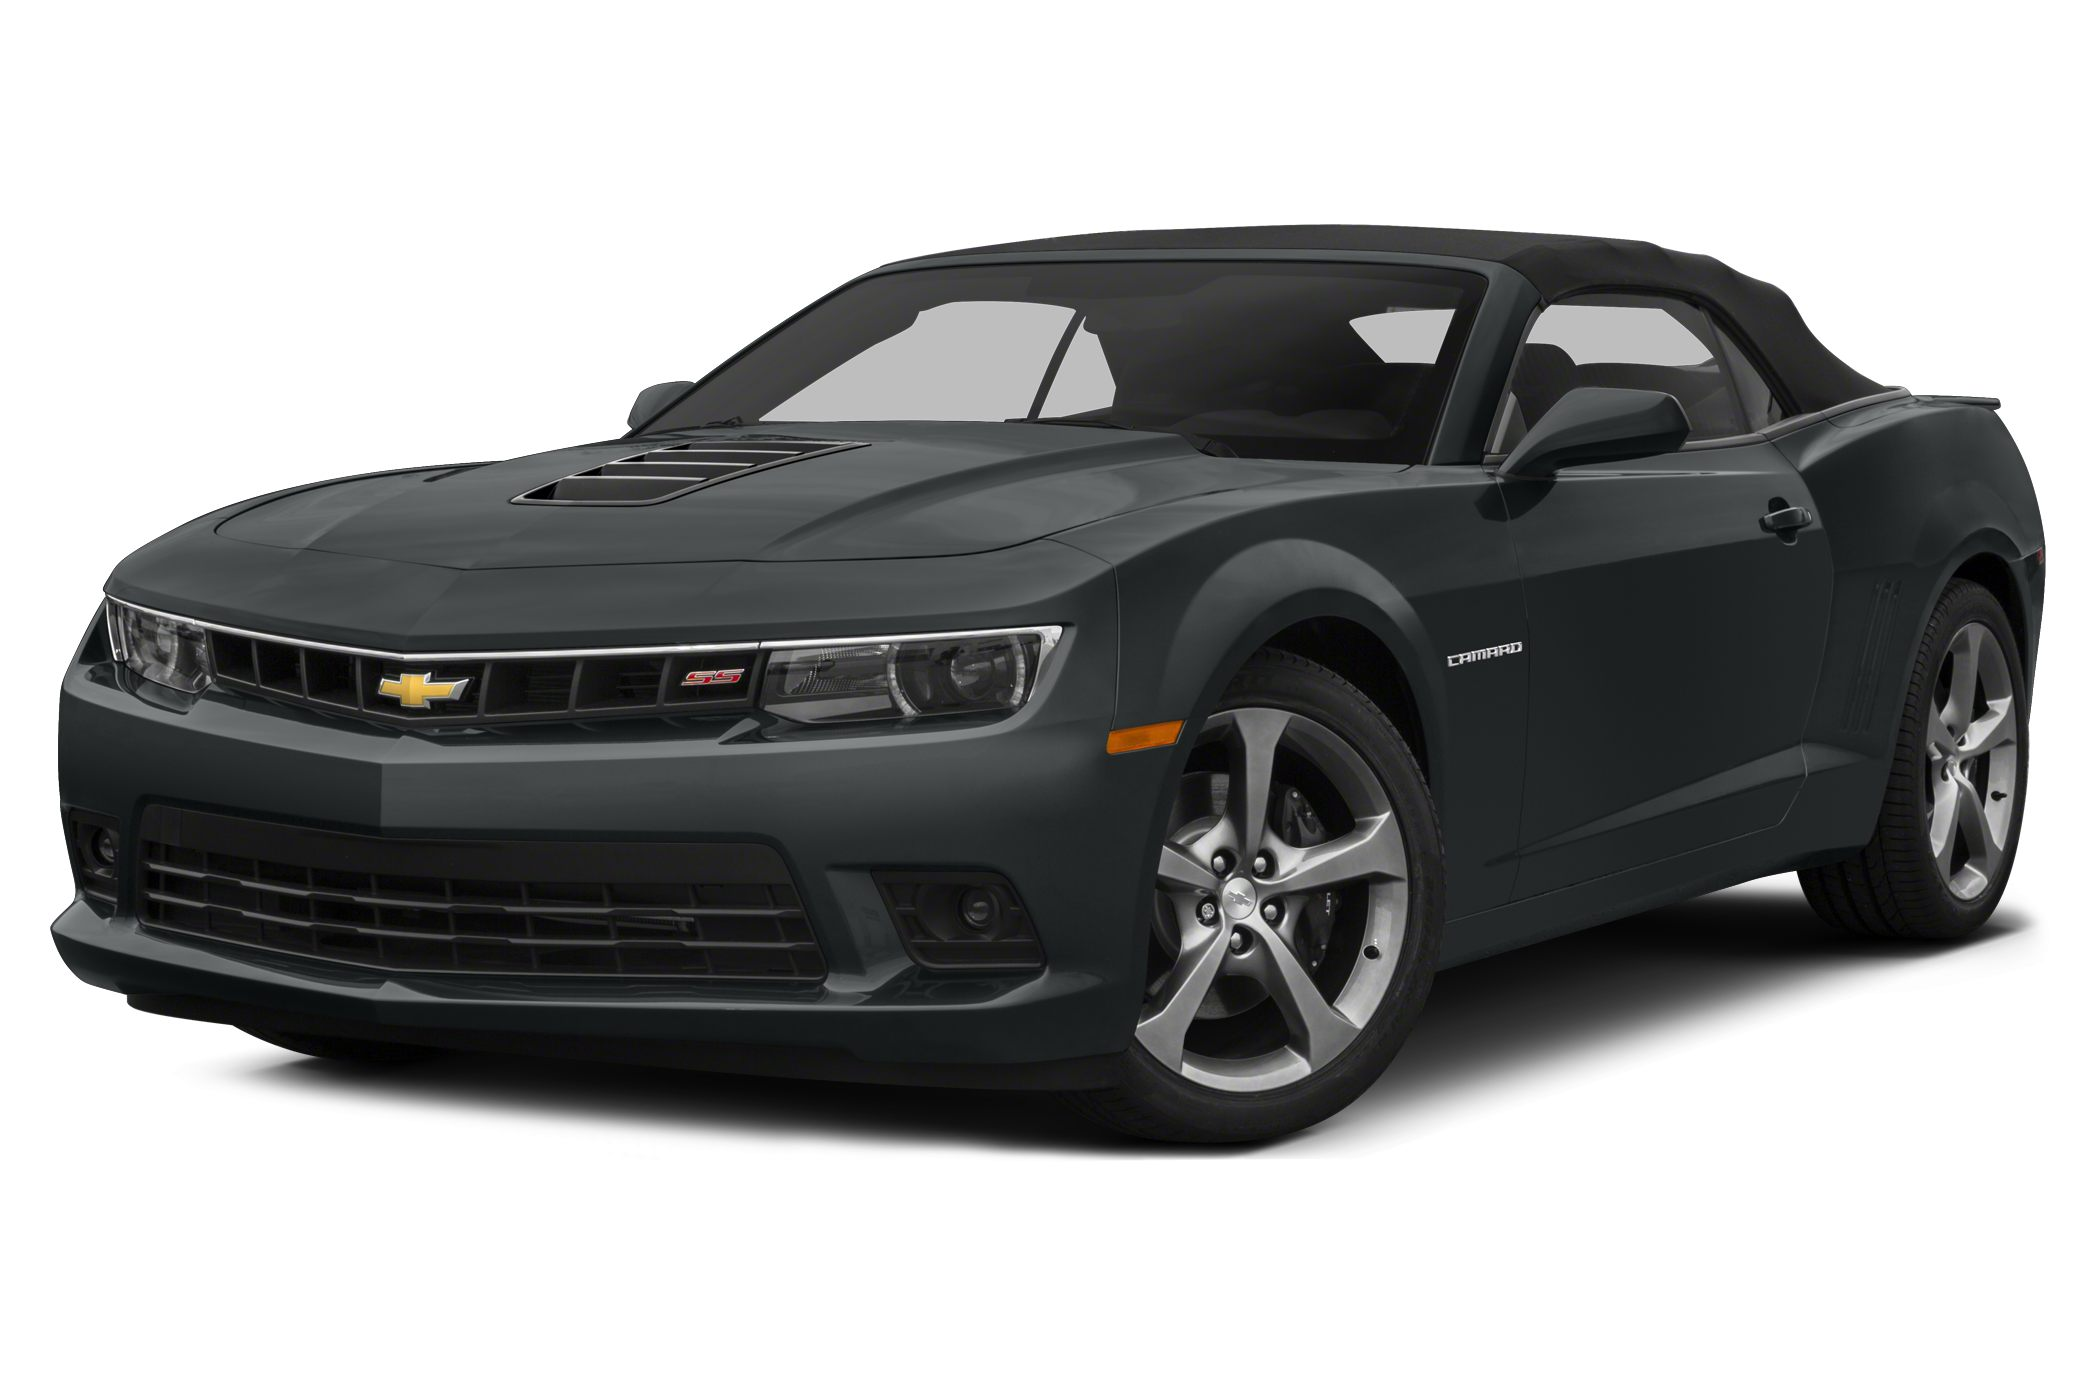 Used Camaros for Sale Near Me Lovely Chevrolet Camaros for Sale